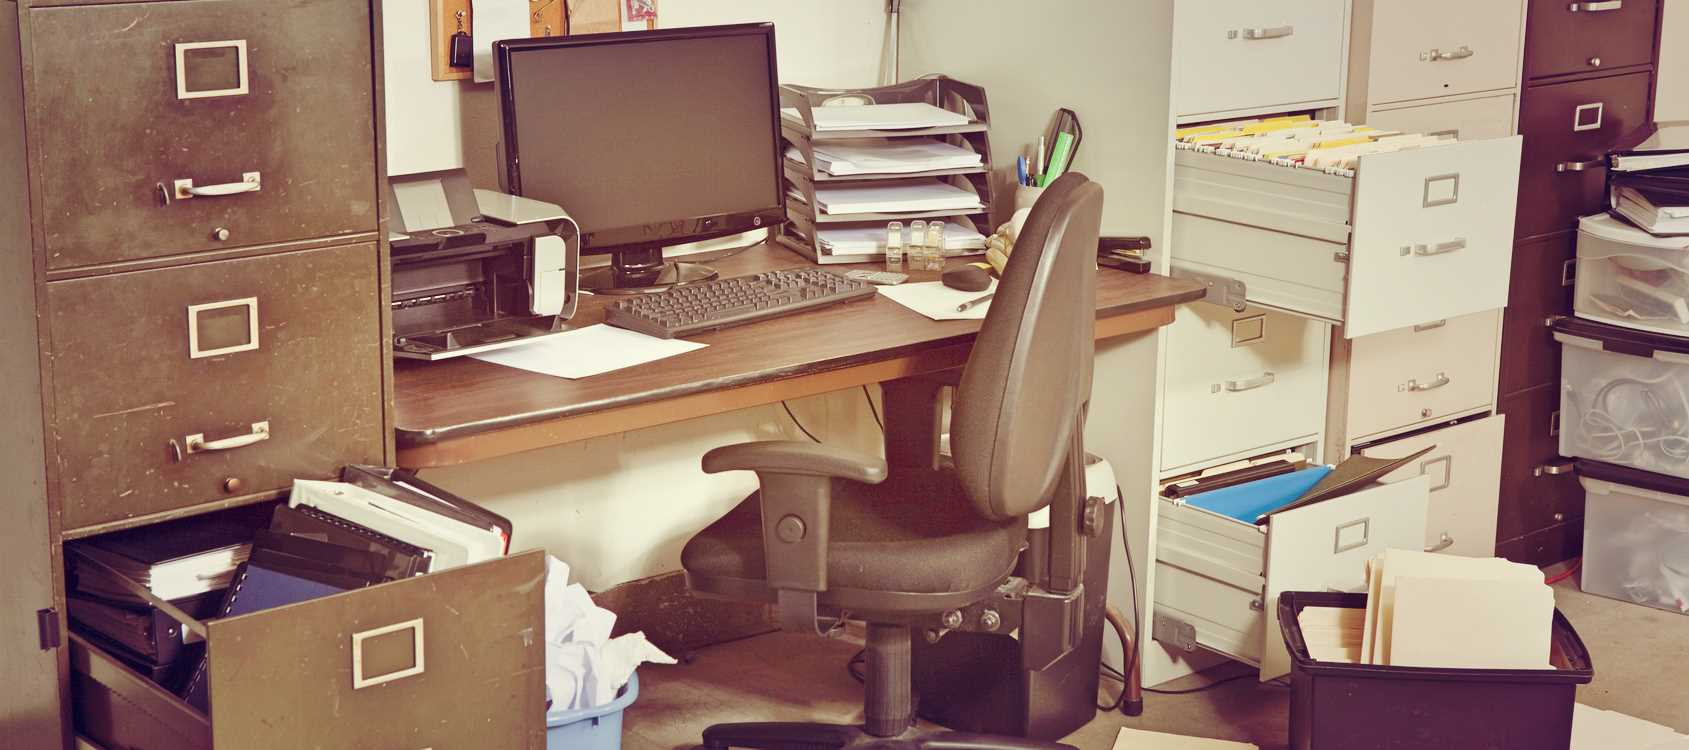 Office Clean Out-Augusta Dumpster Rental & Junk Removal Services-We Offer Residential and Commercial Dumpster Removal Services, Portable Toilet Services, Dumpster Rentals, Bulk Trash, Demolition Removal, Junk Hauling, Rubbish Removal, Waste Containers, Debris Removal, 20 & 30 Yard Container Rentals, and much more!